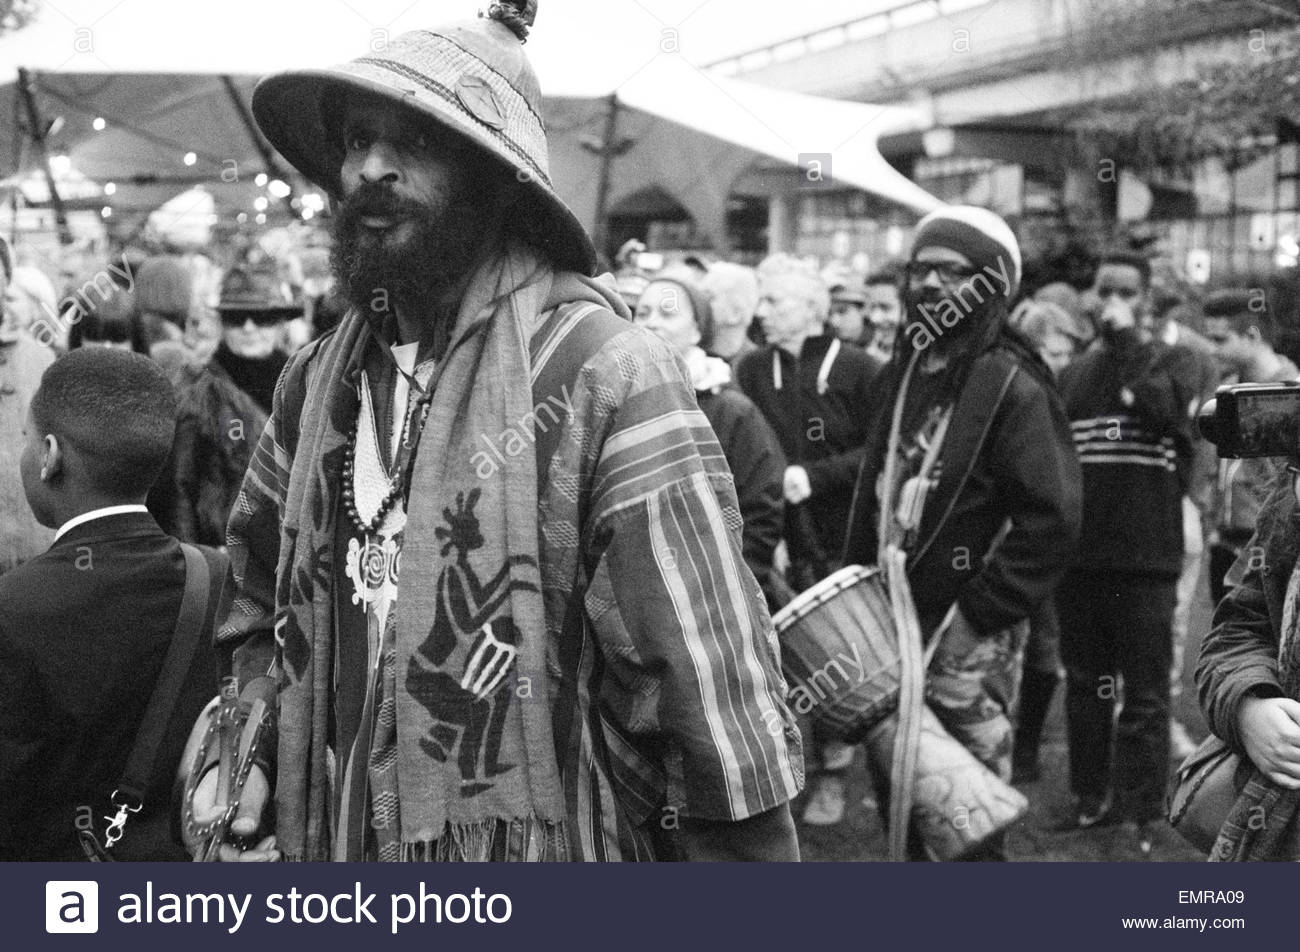 19th April 2015, Ras Asheber AKA Niles Hailstones a spokesperson for westway23, a local Notting Hill pressure group - Stock Image